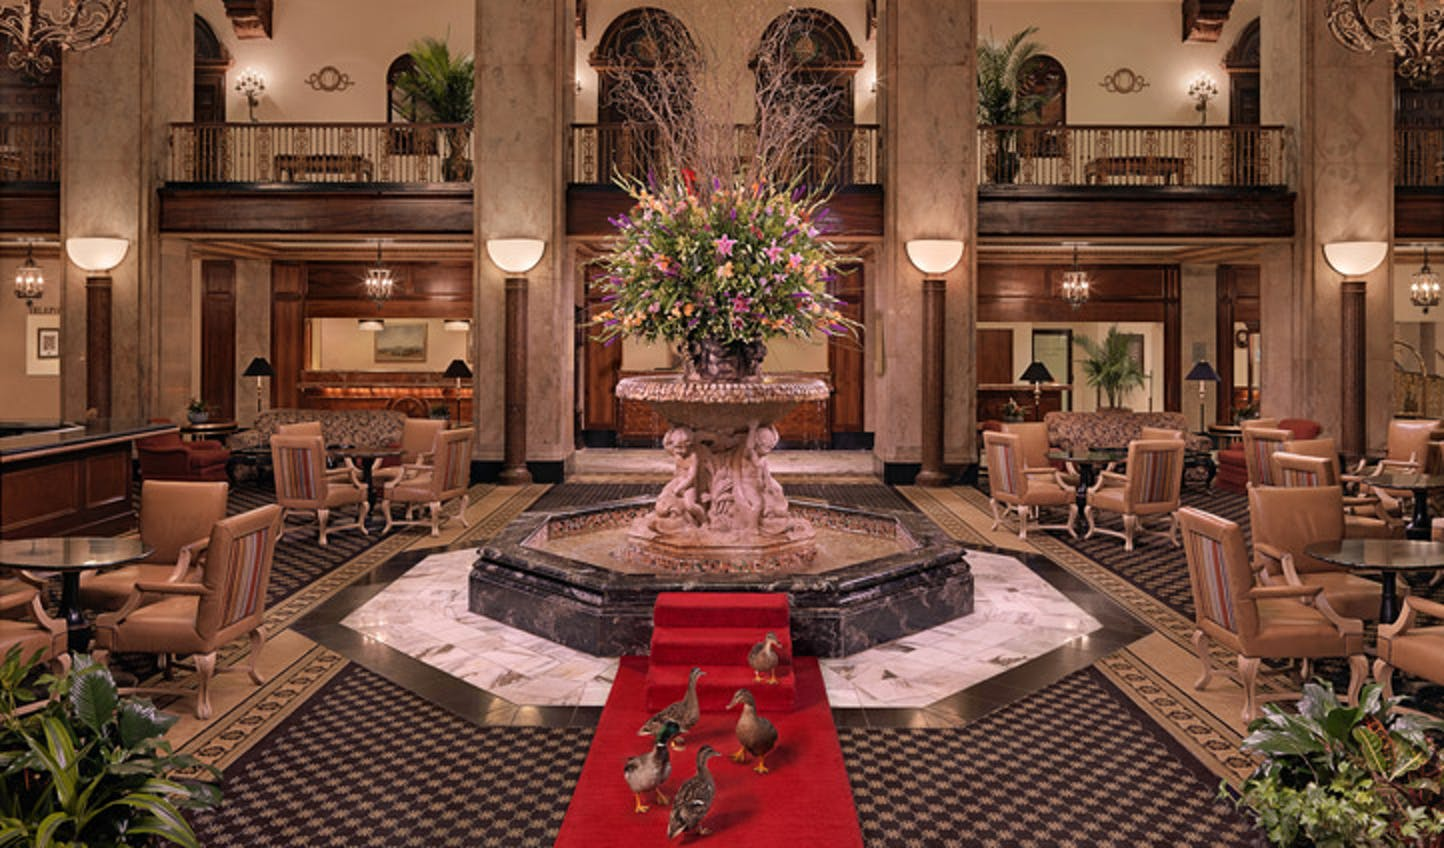 The Peabody Hotel's resident ducks walk to the fountain